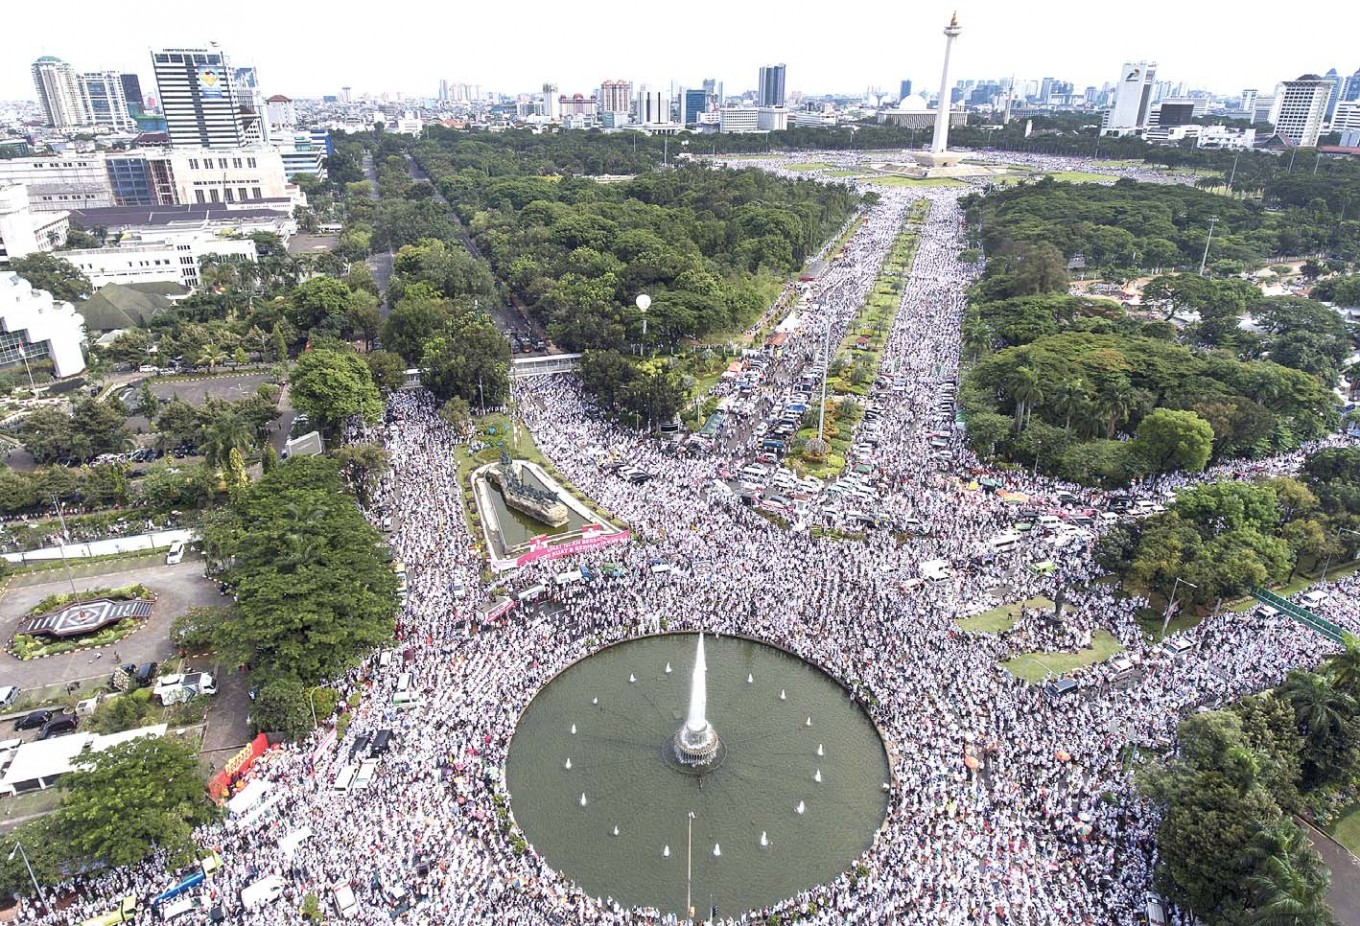 """Mass prayers: Hundreds thousands of Muslims gather and chant prayers during a rally stretching from Bank Indonesia to the Monument National in Central Jakarta on Dec. 2. The event was held to demand the jailing of Jakarta Governor Basuki """"Ahok"""" Tjahaja Purnama for blasphemy."""